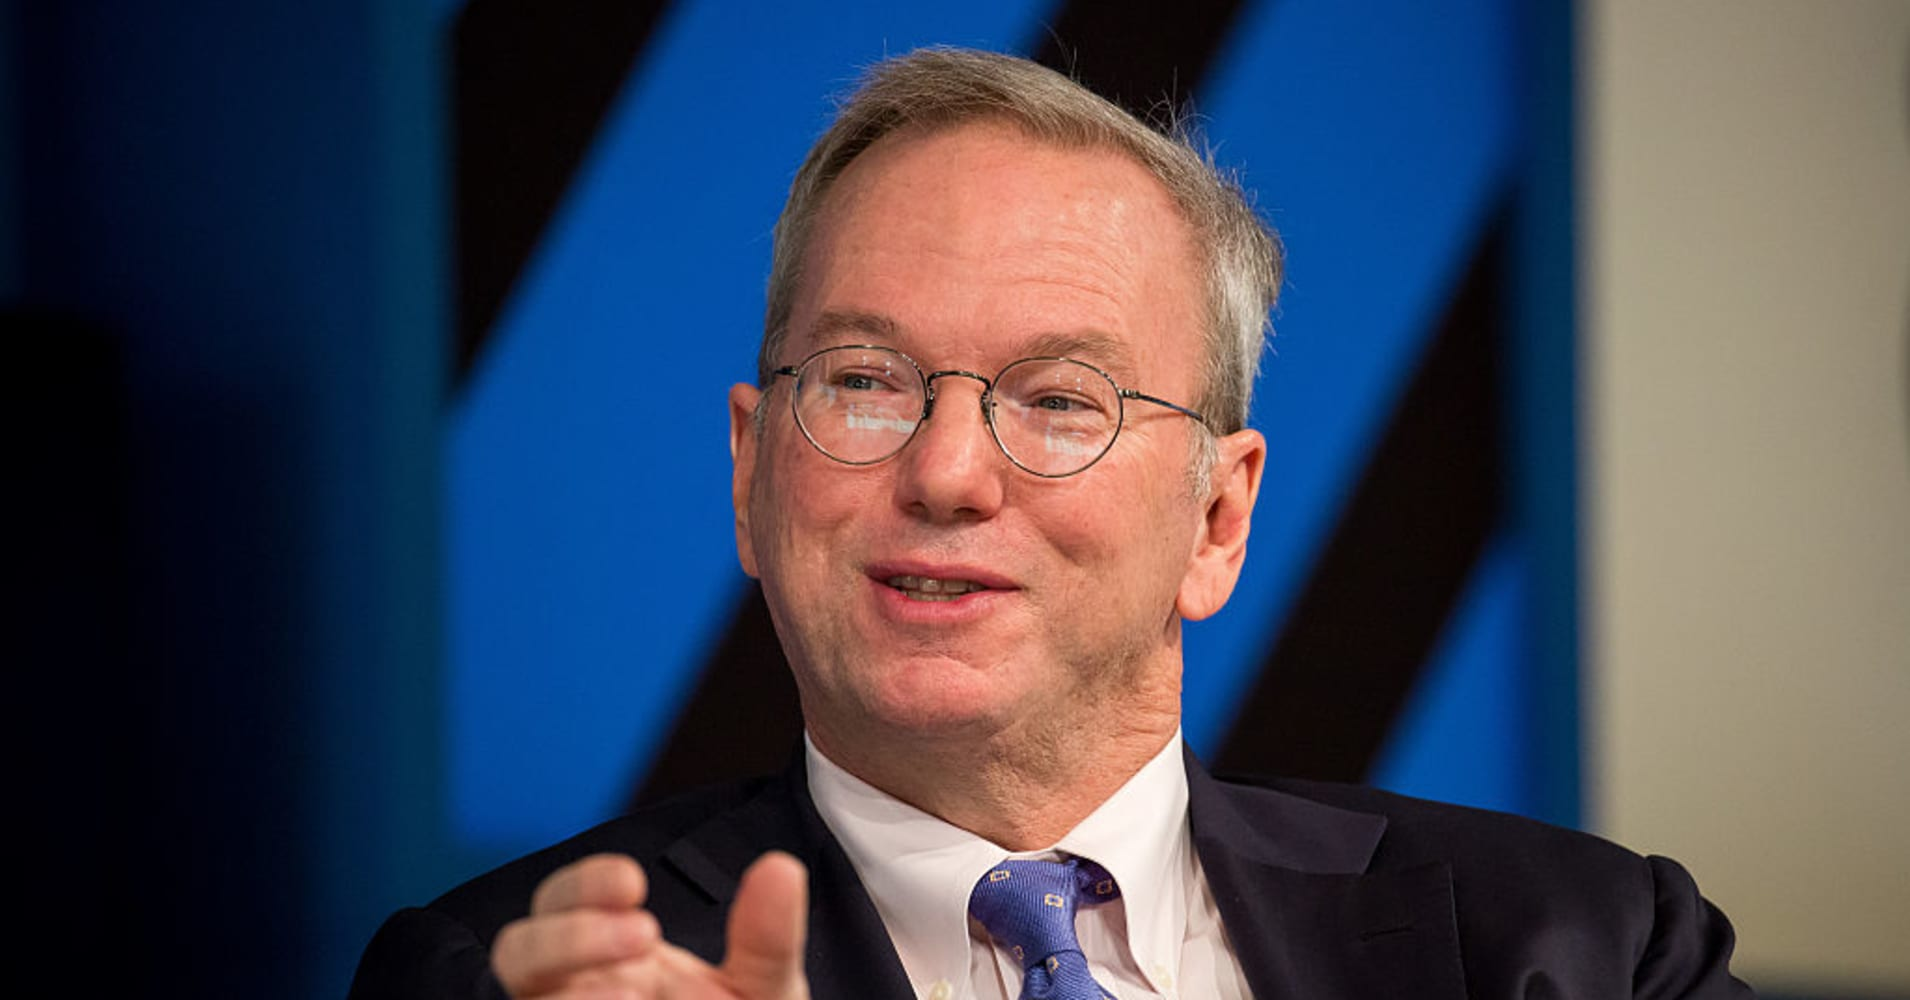 Eric Schmidt, executive chairman of Alphabet, the parent company of Google.